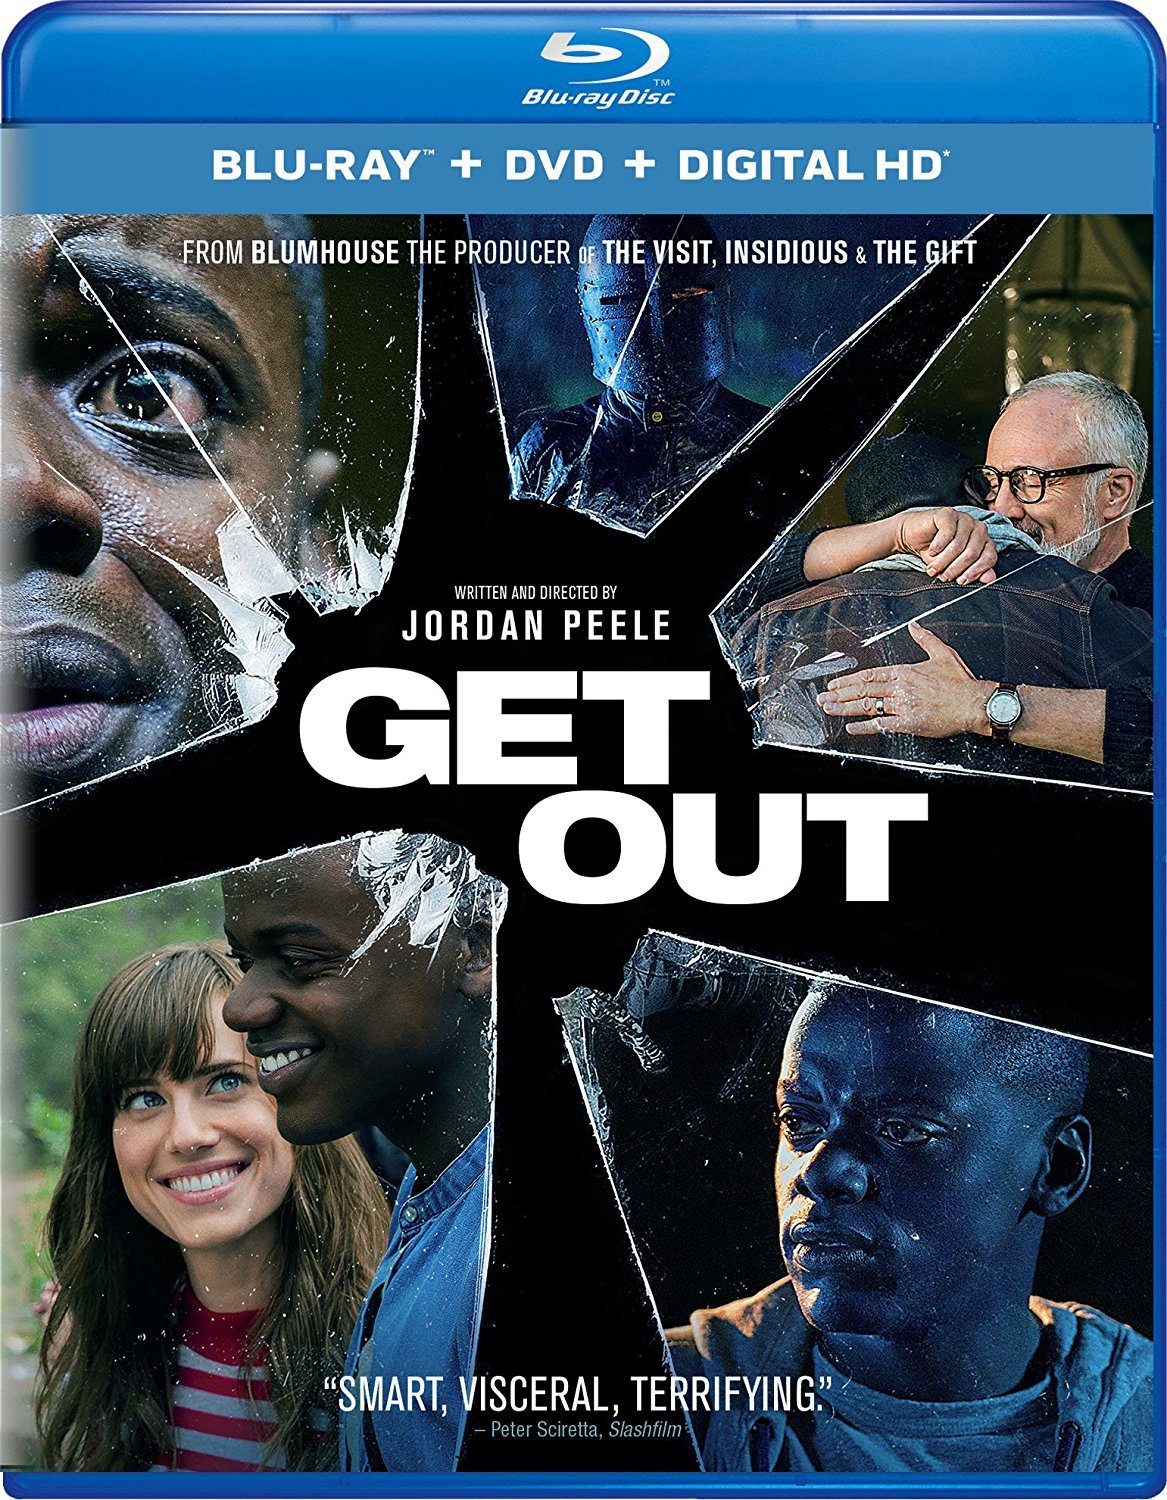 Get Out (2017) poster image